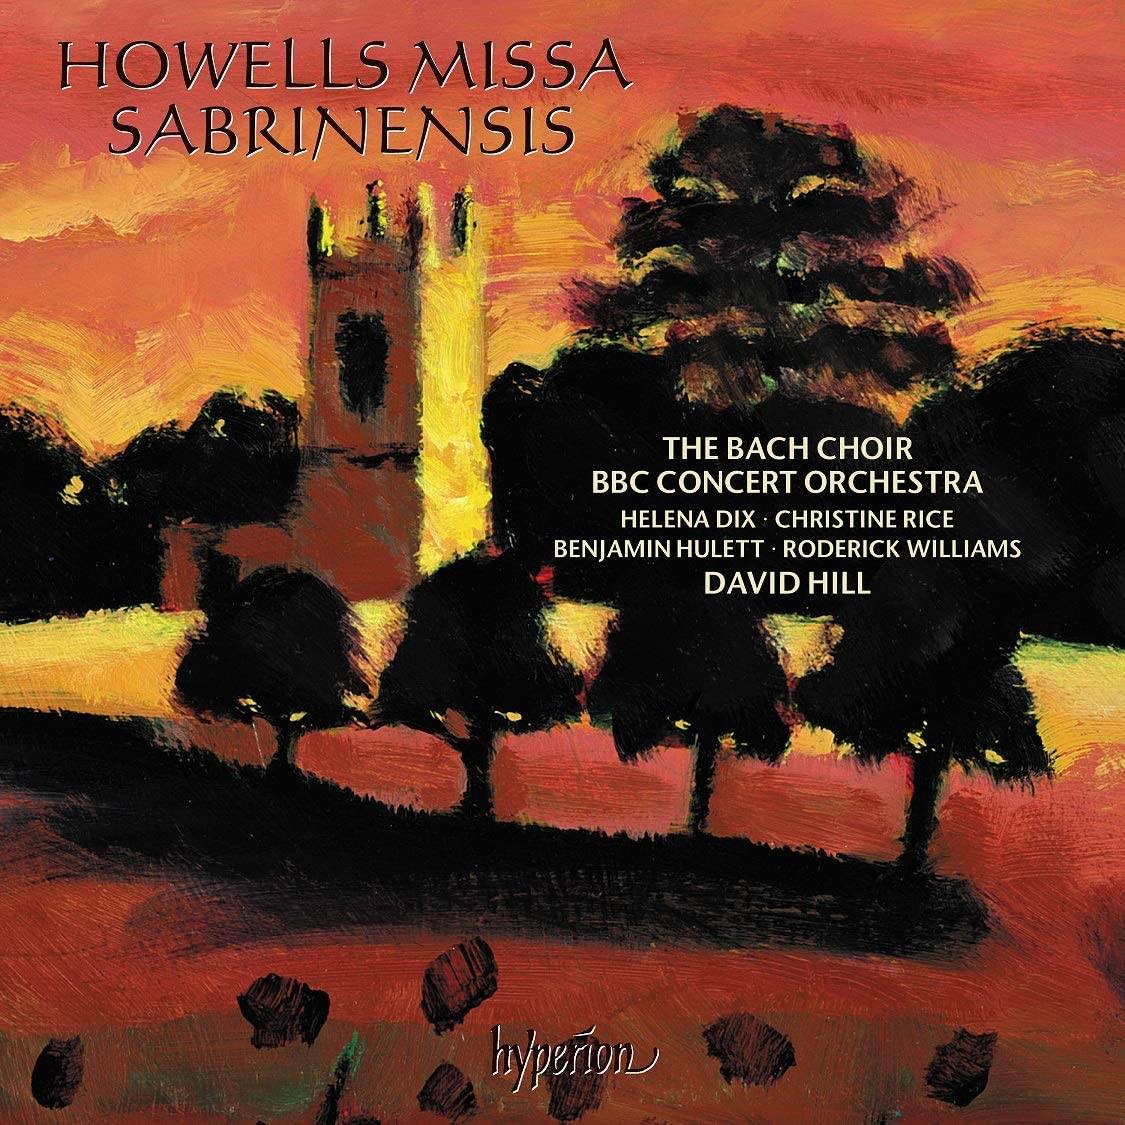 Review of HOWELLS Missa Sabrinensis. Michael, 'A Fanfare Setting'